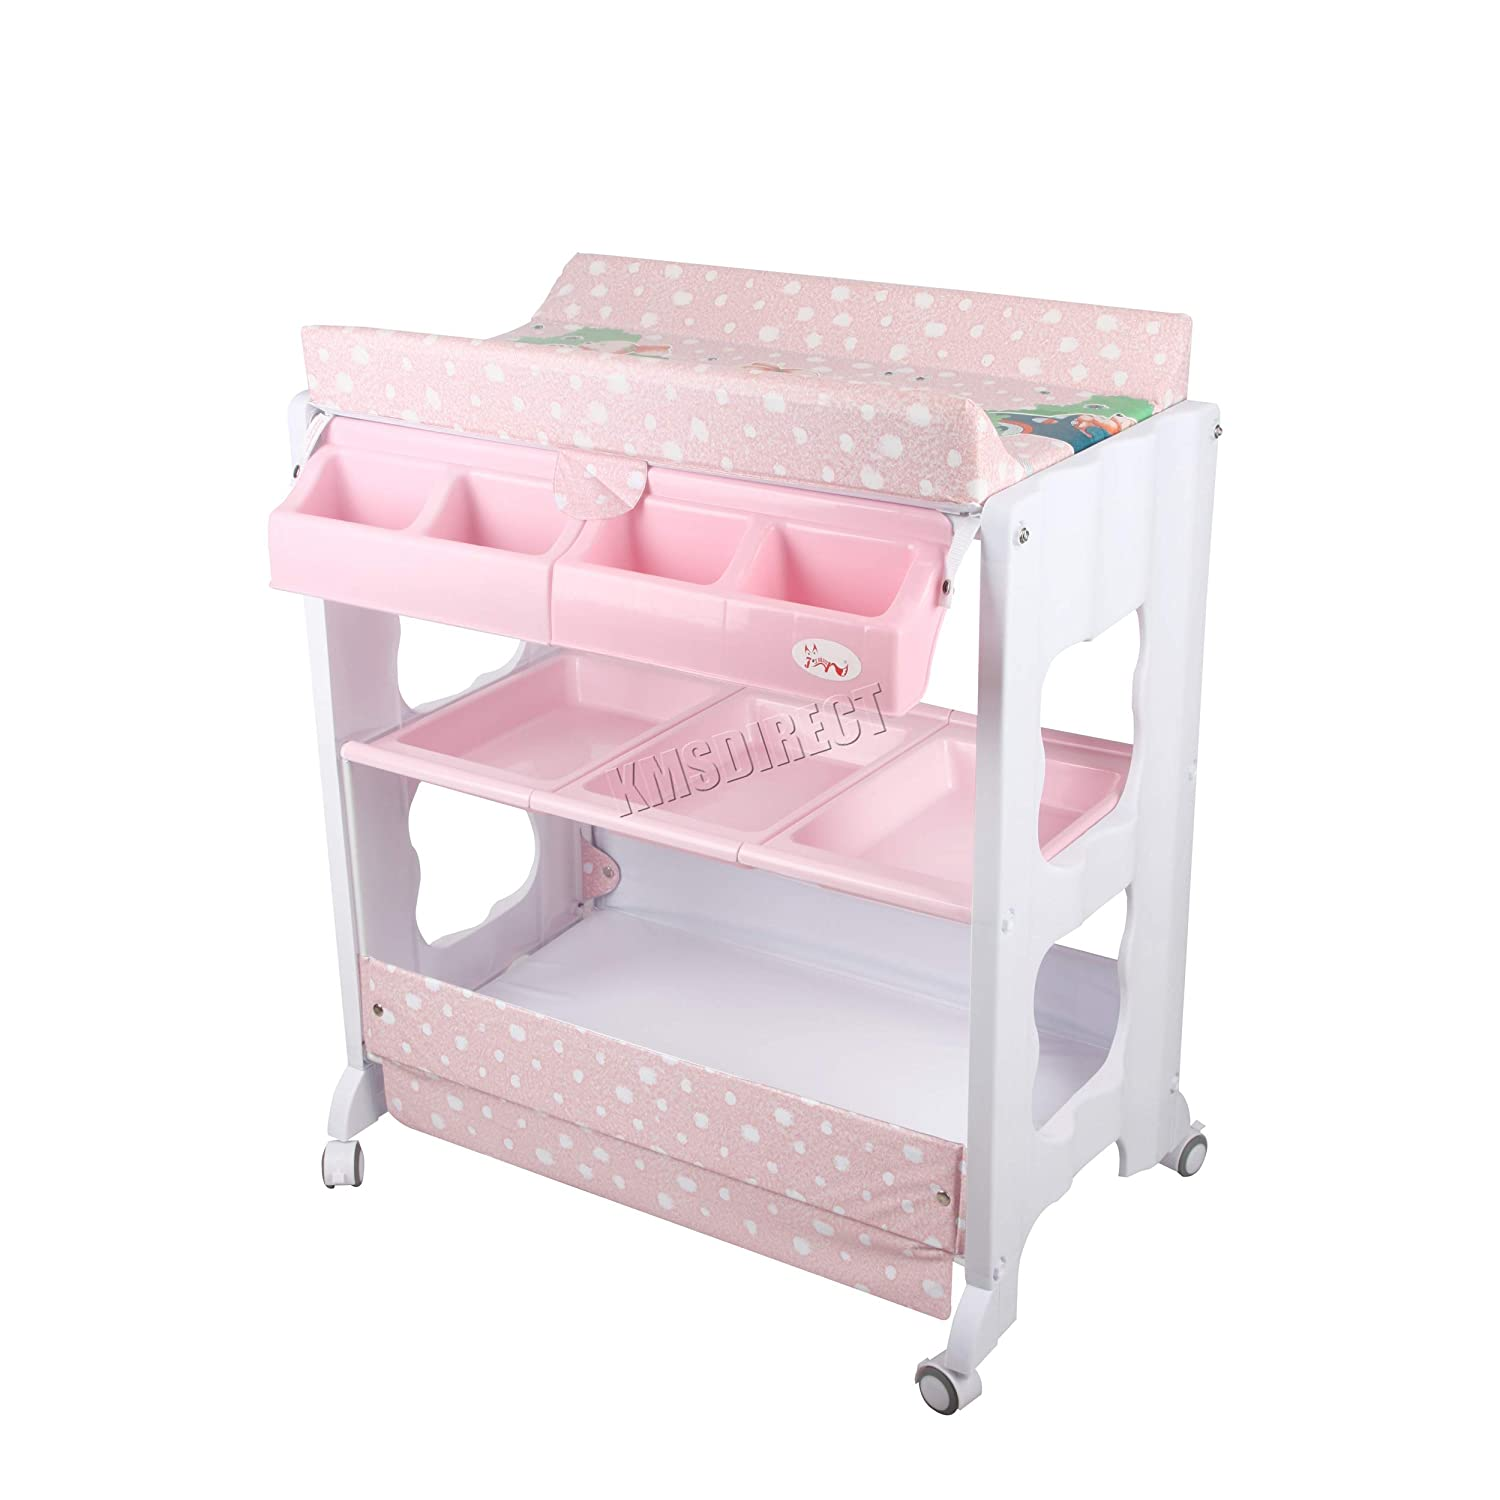 FoxHunter 2 in 1 Baby Bath Changing Dresser Station Table Unit Storage Towel Rail Infant Nursery Trays Furniture BCT02 Pink KMS BCTW01